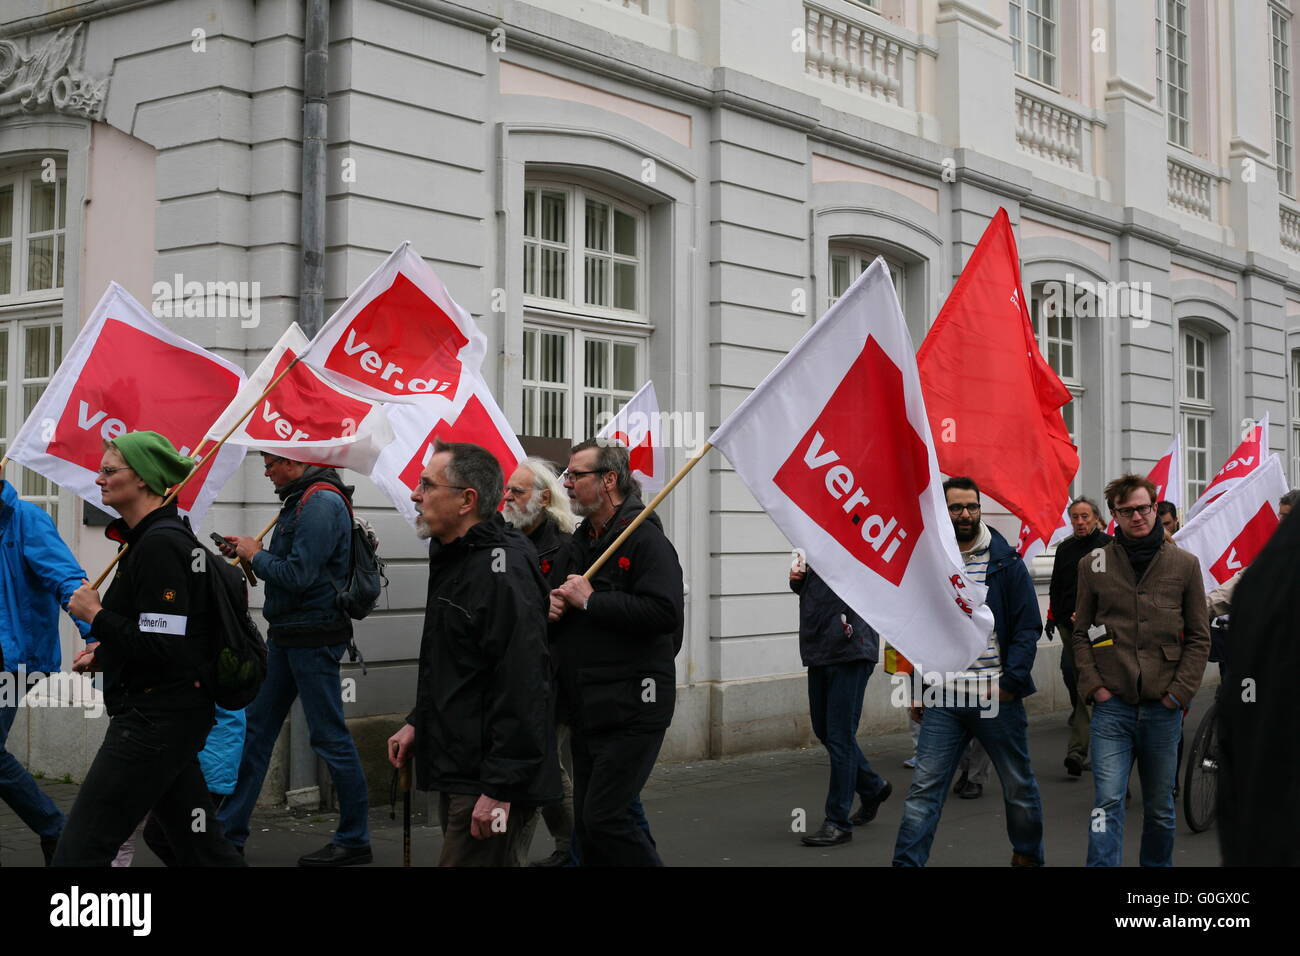 some members of the ver.di trade union with flags, on the way to the market place in Bonn, Germany - Stock Image